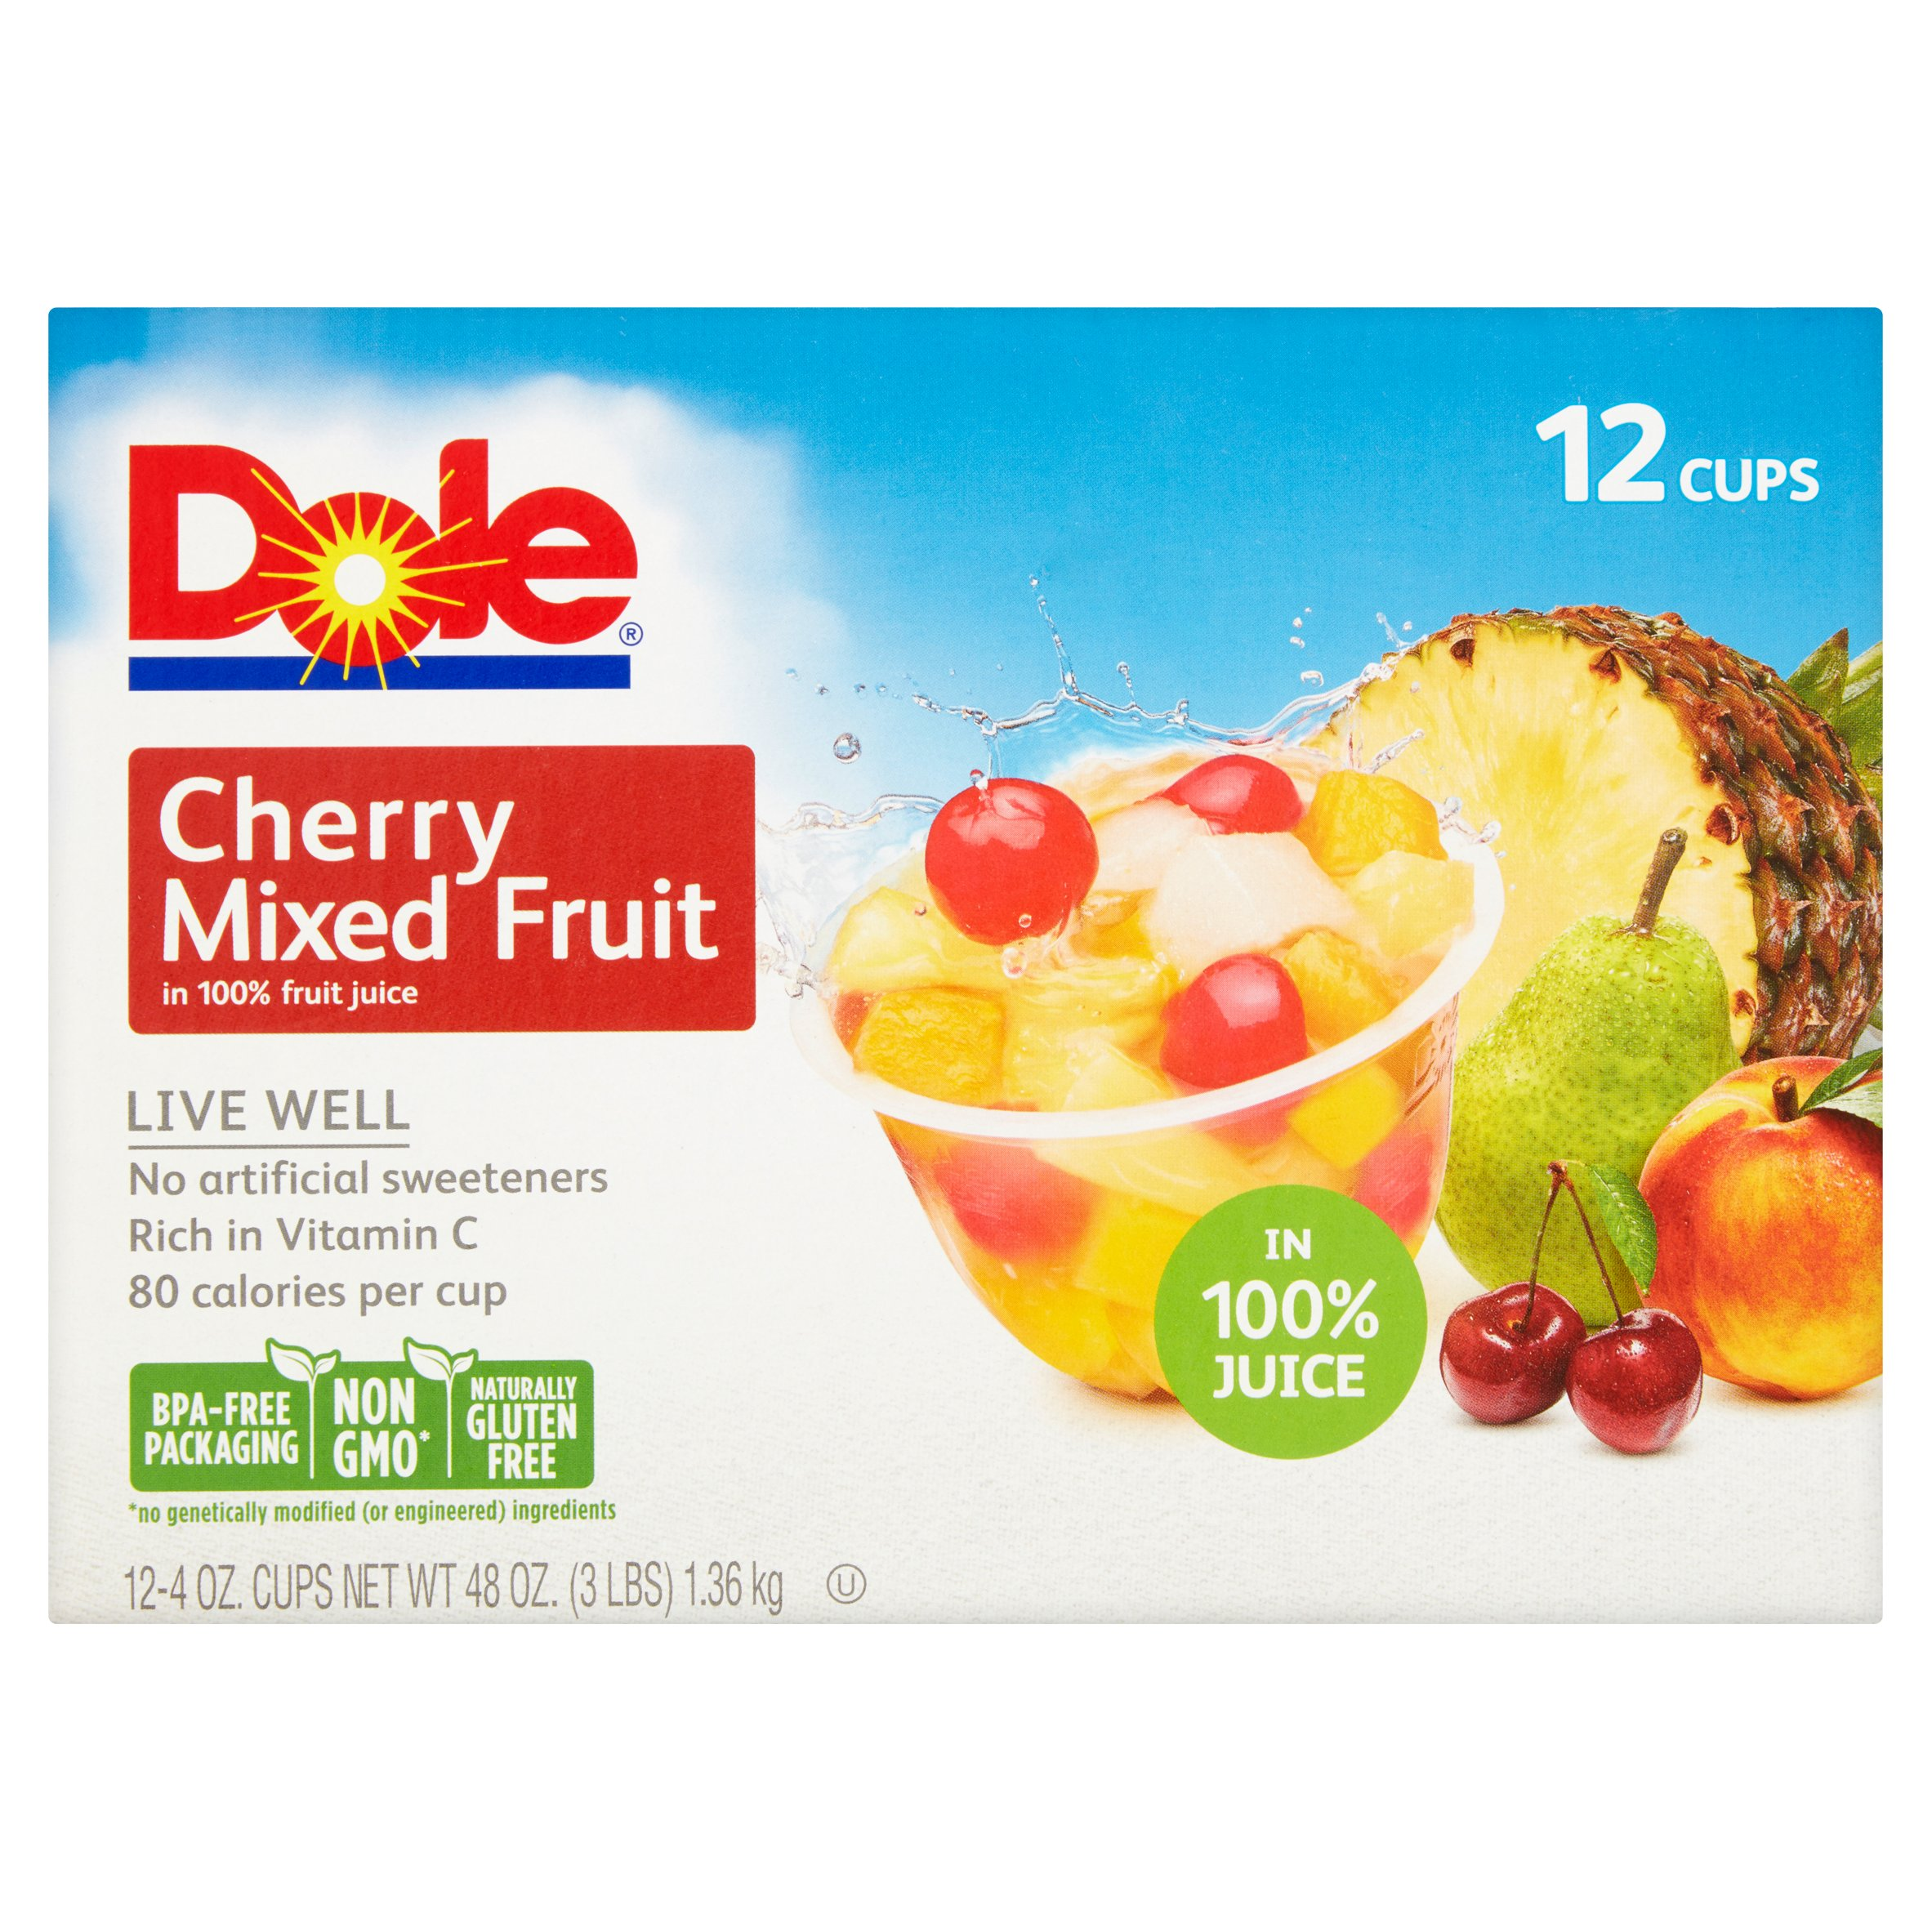 Dole Cherry Mixed Fruit in 100% Fruit Juice 12-4 oz. Cups by ©Dole Packaged Foods, LLC